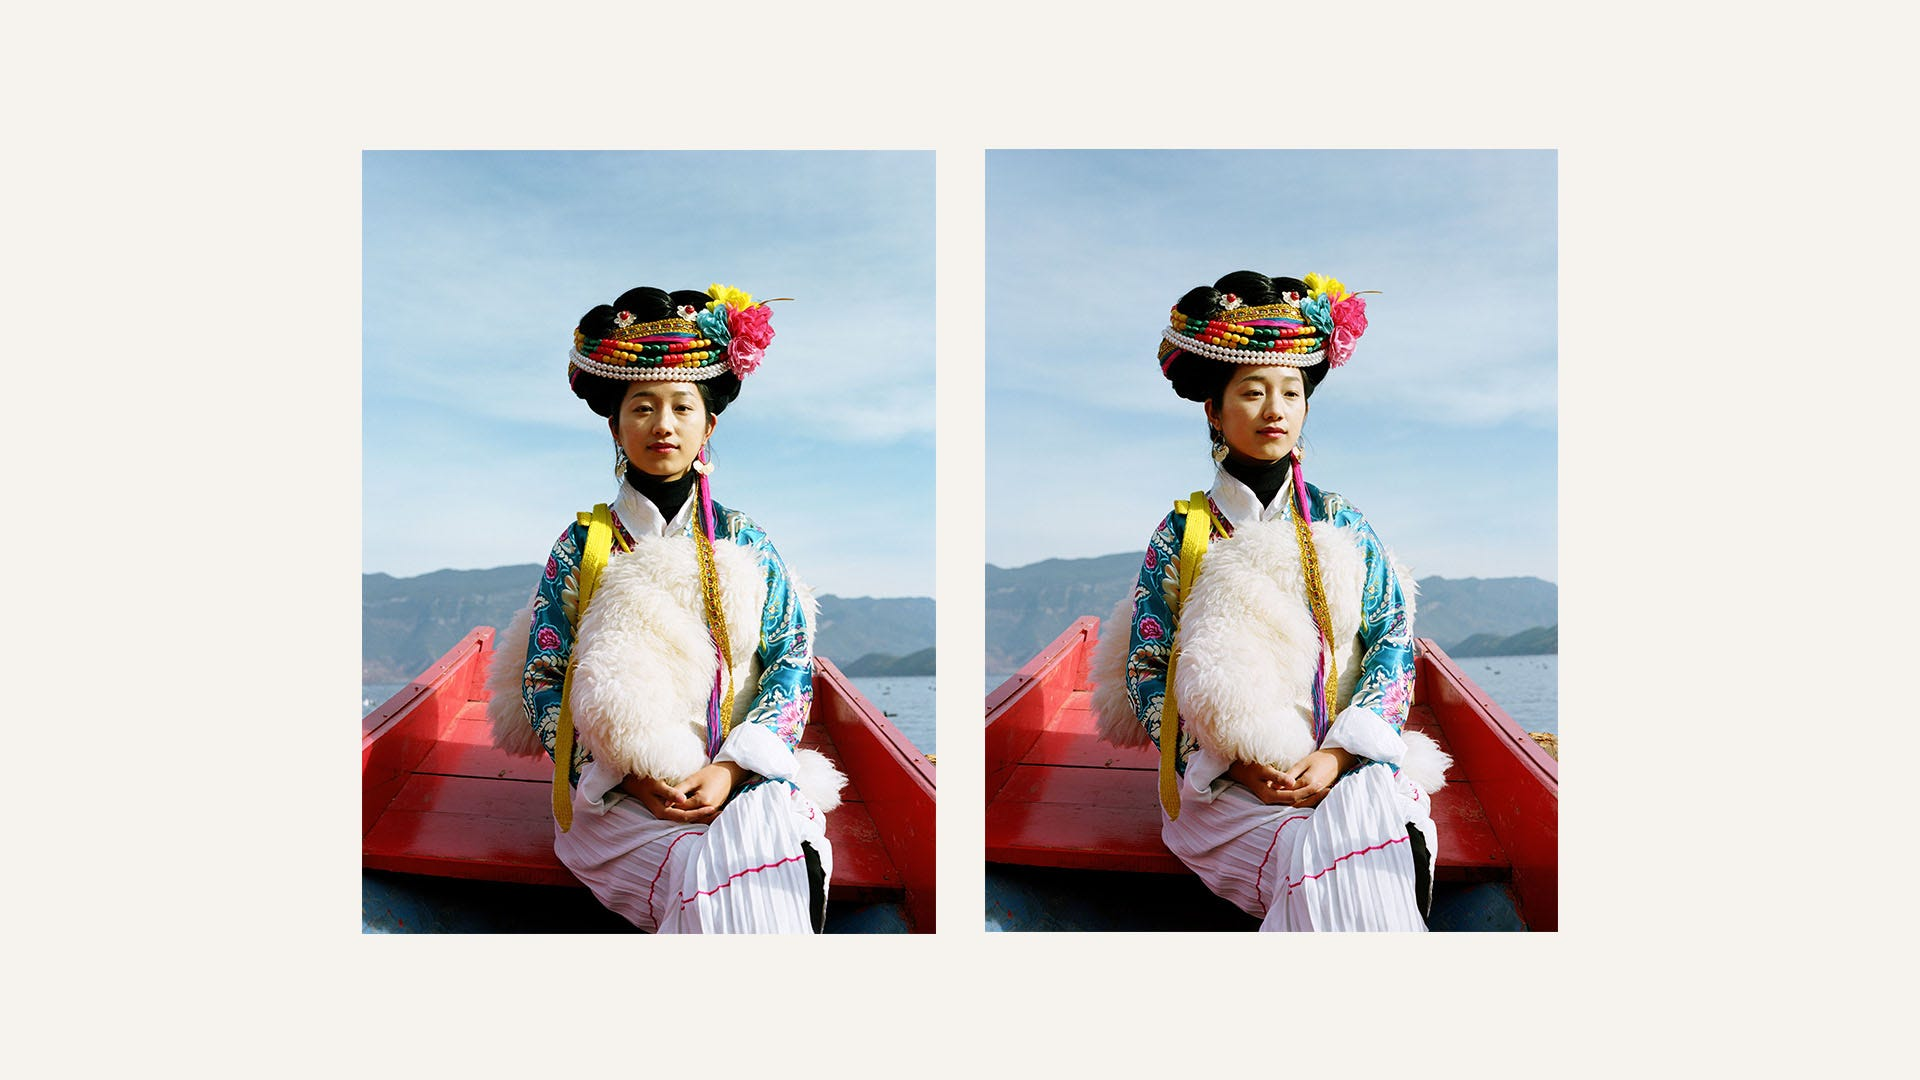 Mosuo Women In China: Millennials In A Matriarchy?